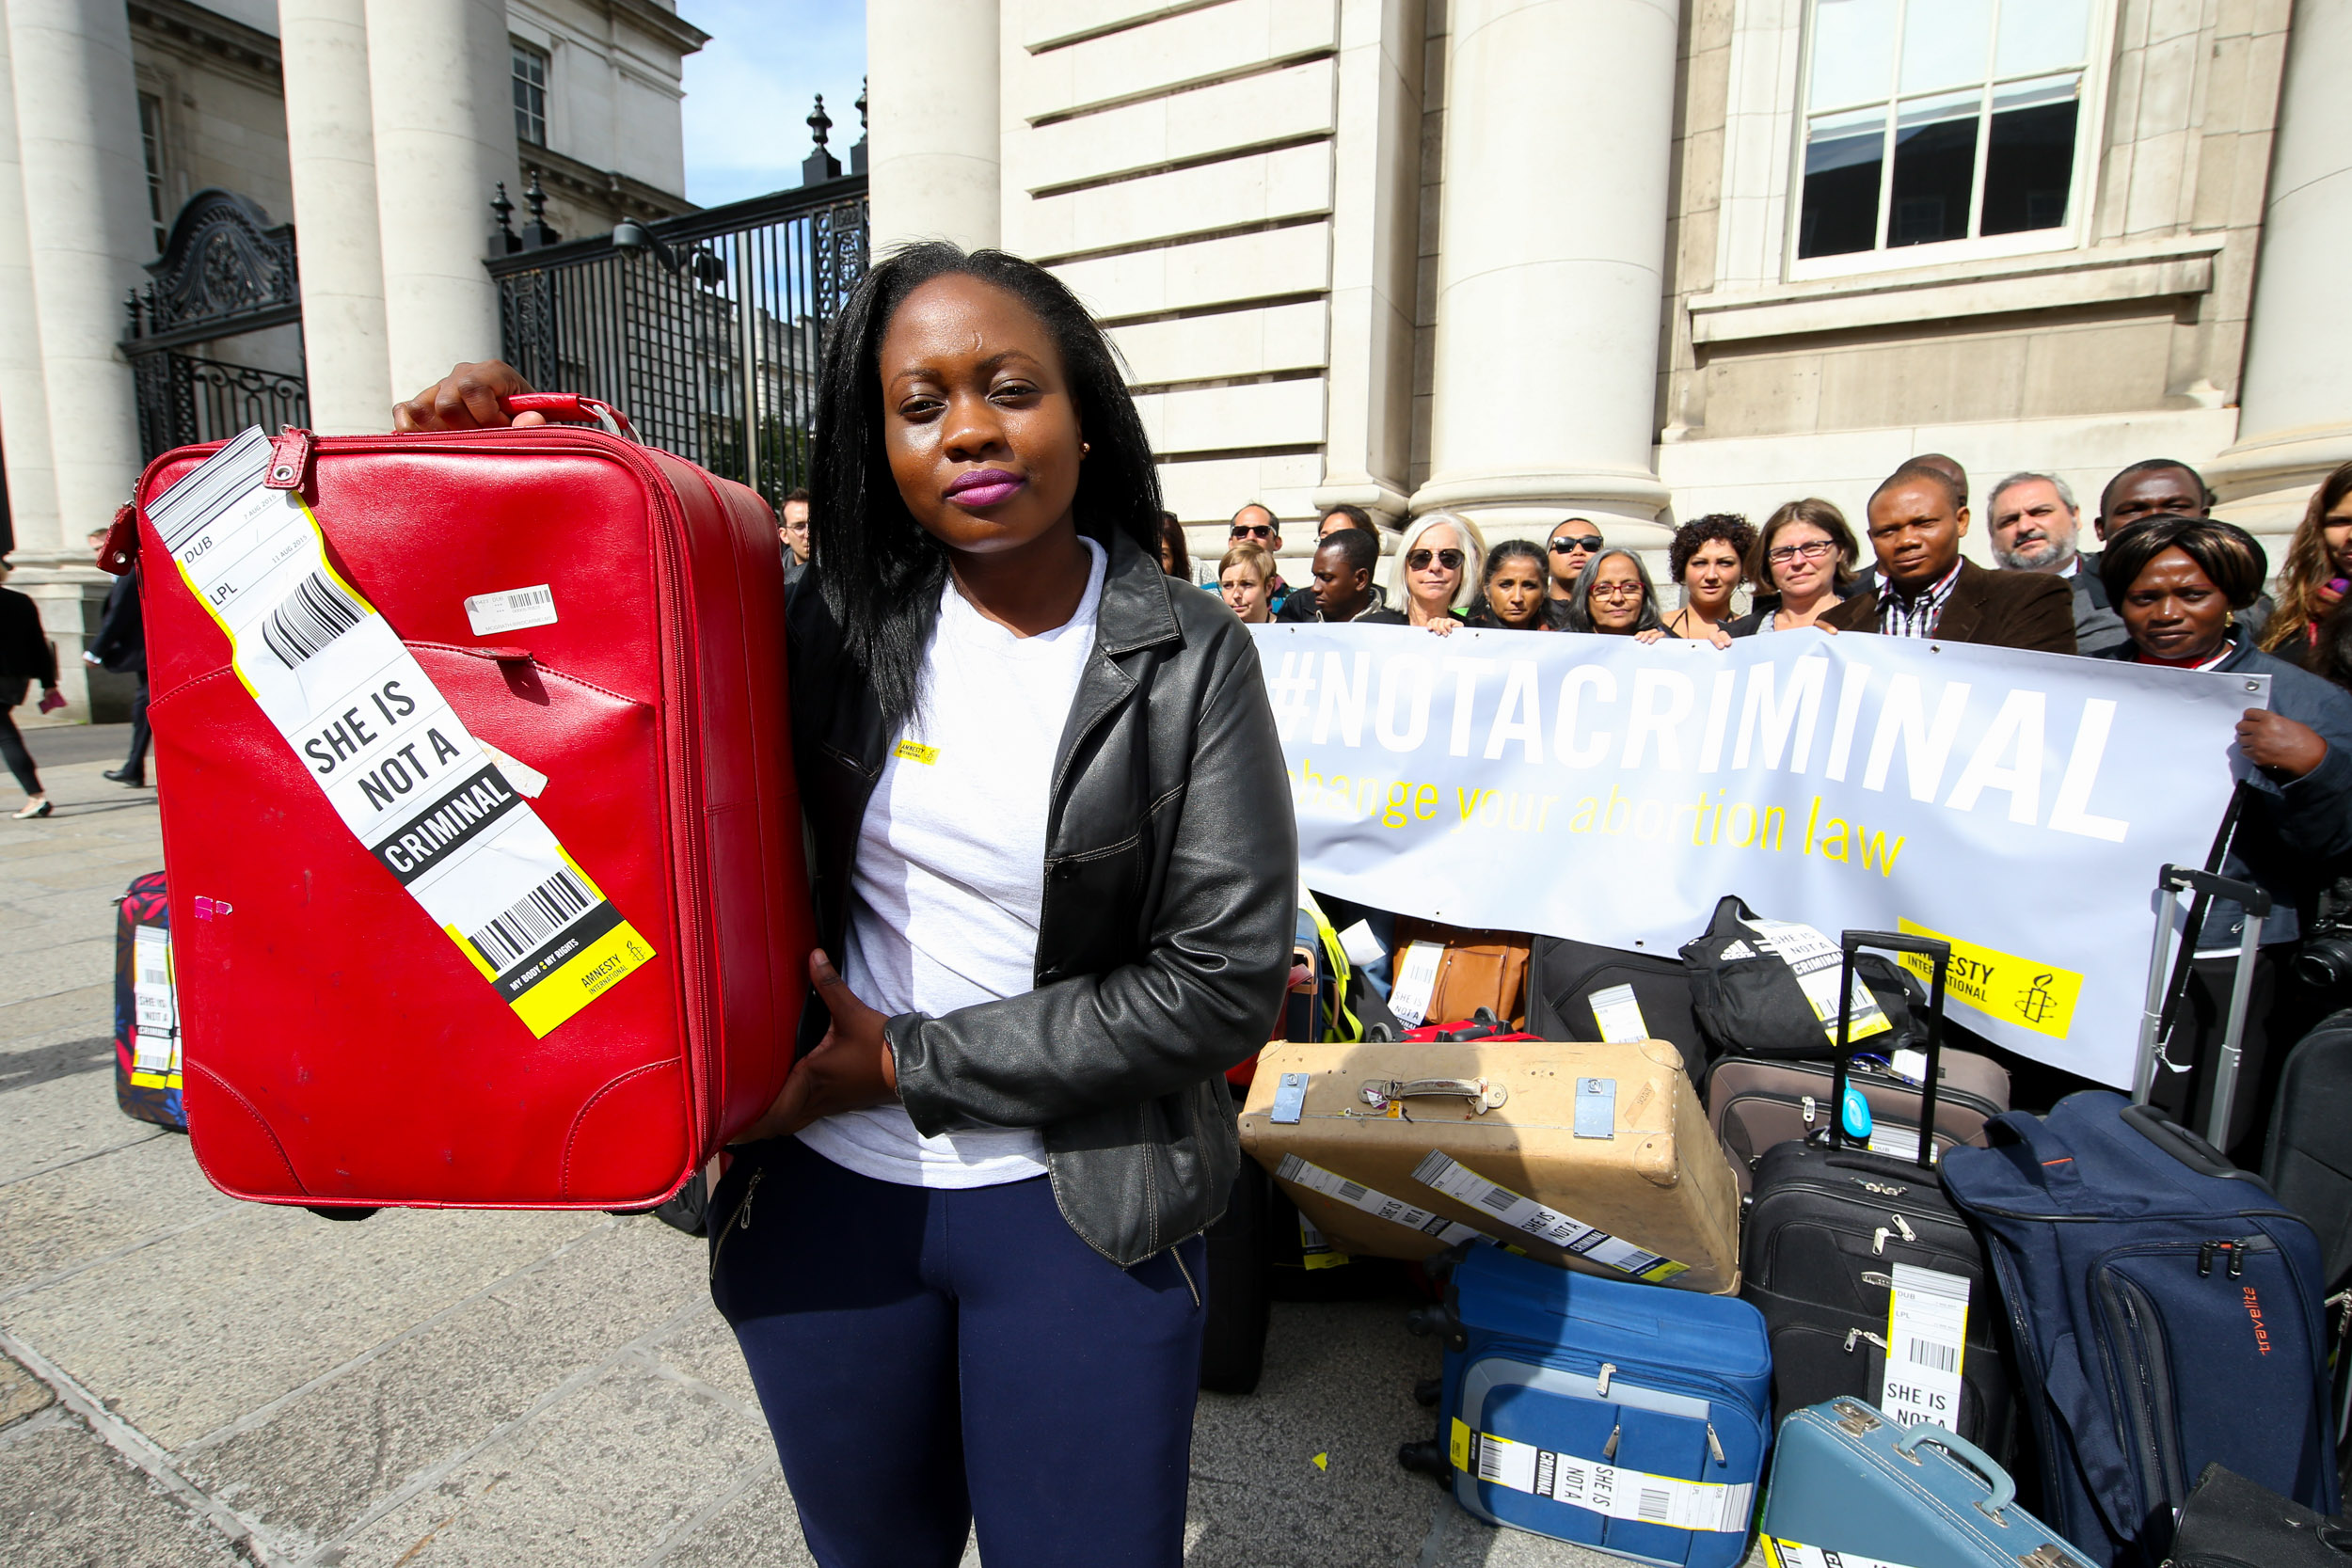 Amnesty supporters protest Ireland's restrictive abortion laws in Dublin, Ireland